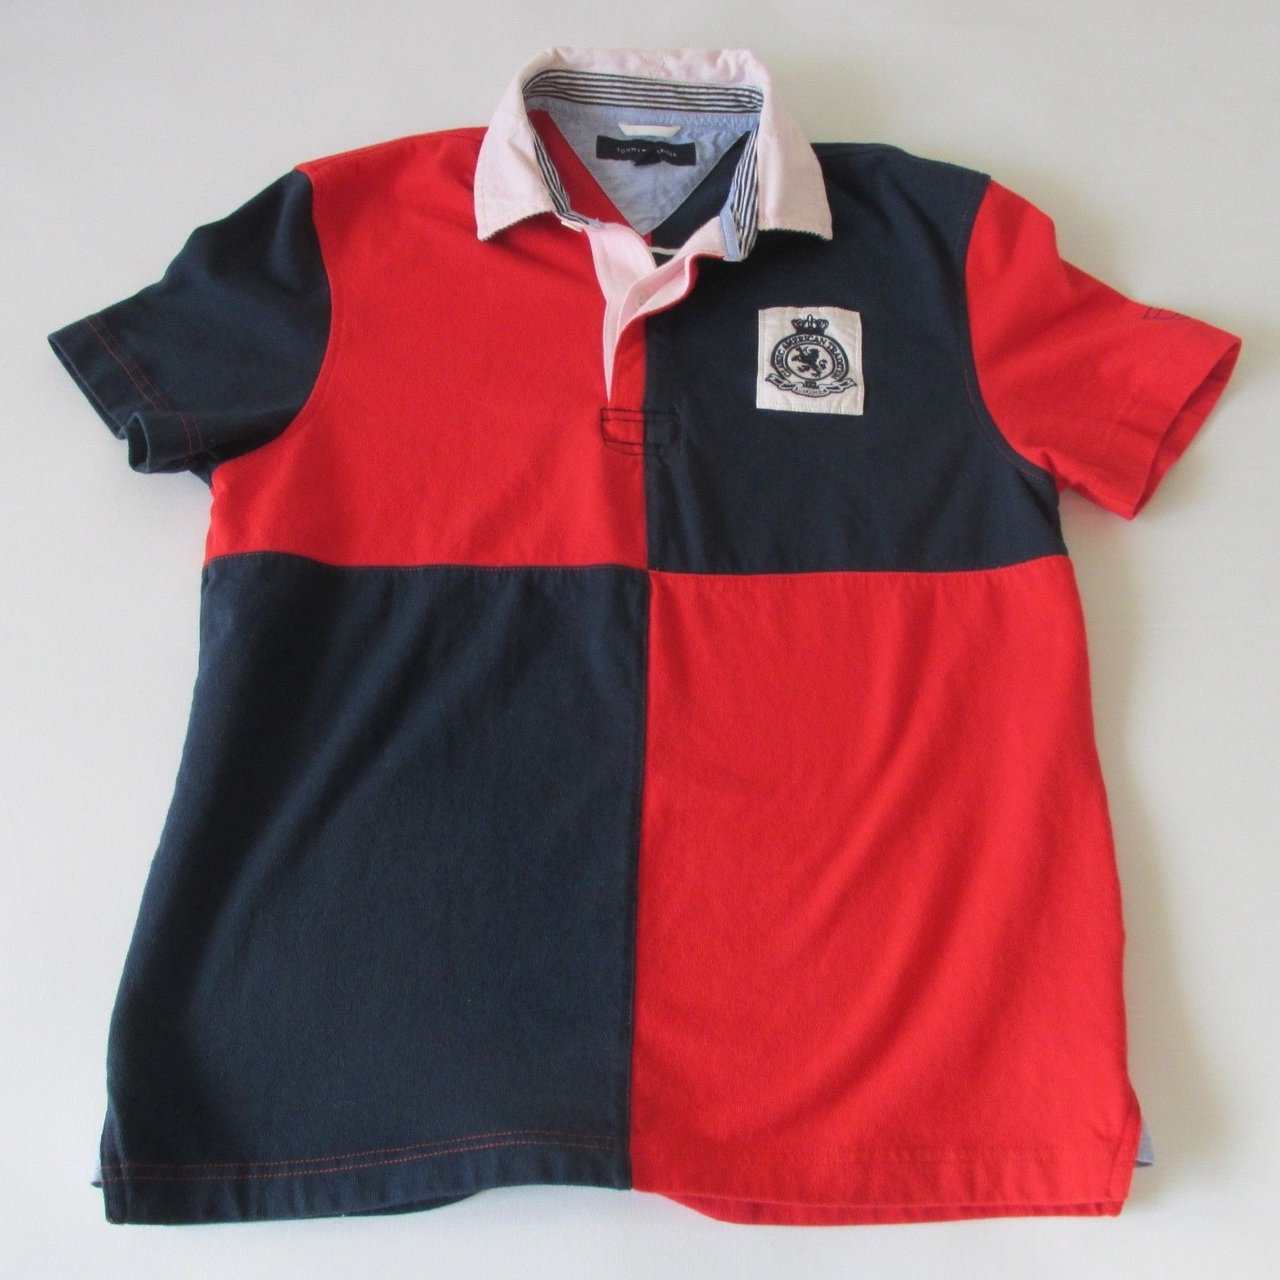 4036c164 @deanz74. 10 months ago. Altadena, United States. Vintage Tommy Hilfiger  Flag Colorway Short Sleeve Rugby Polo Shirt. Authentic. Embroidered logo.